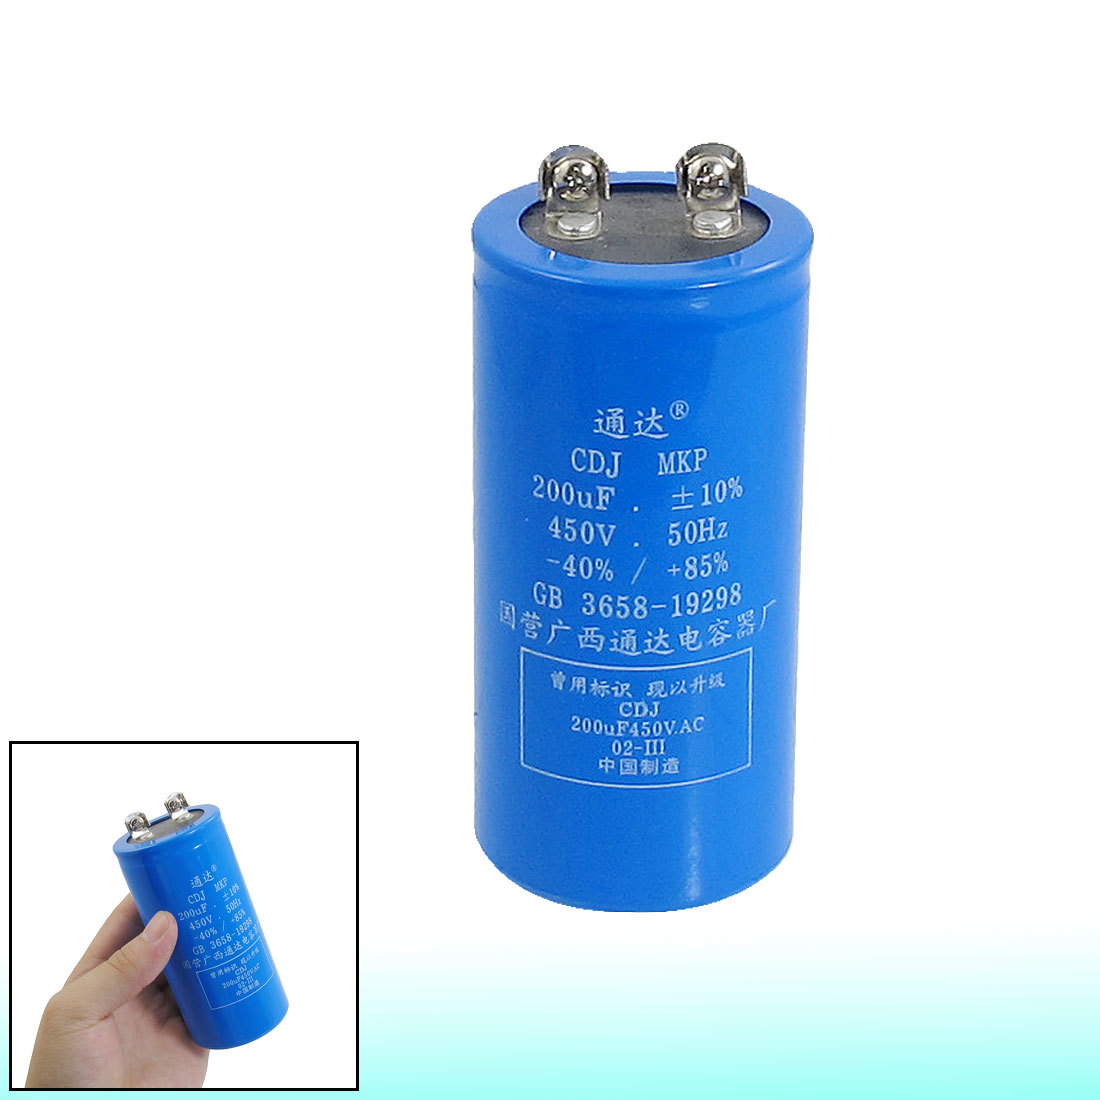 CDJ-MKP-Polypropylene-Film-Motor-Start-up-Capacitor-450VAC-200uF-10